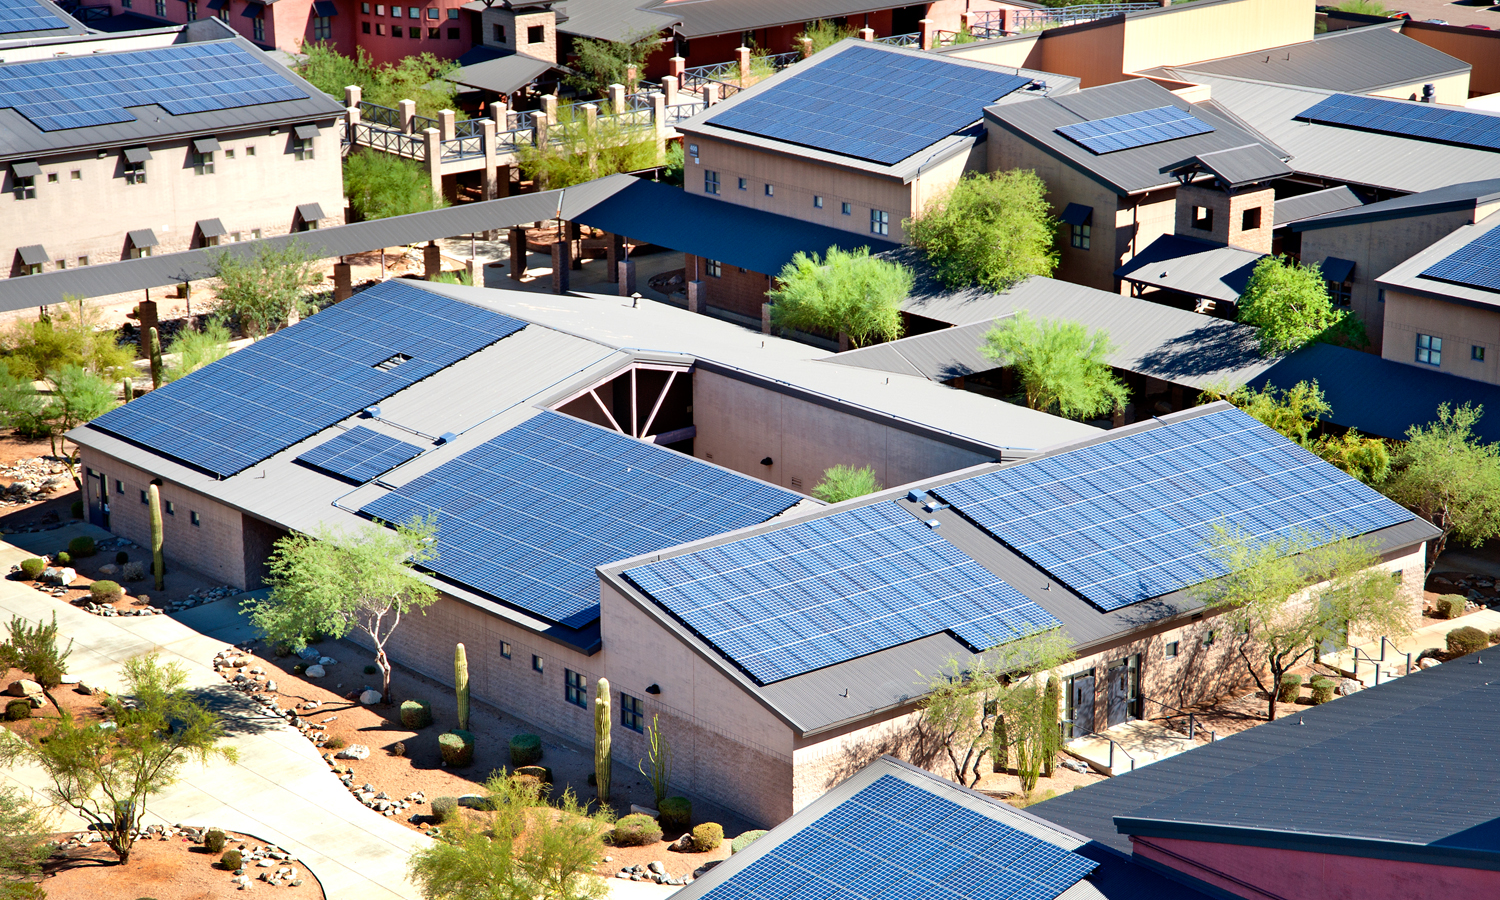 SolarCity panels, image courtesy of SolarCity.